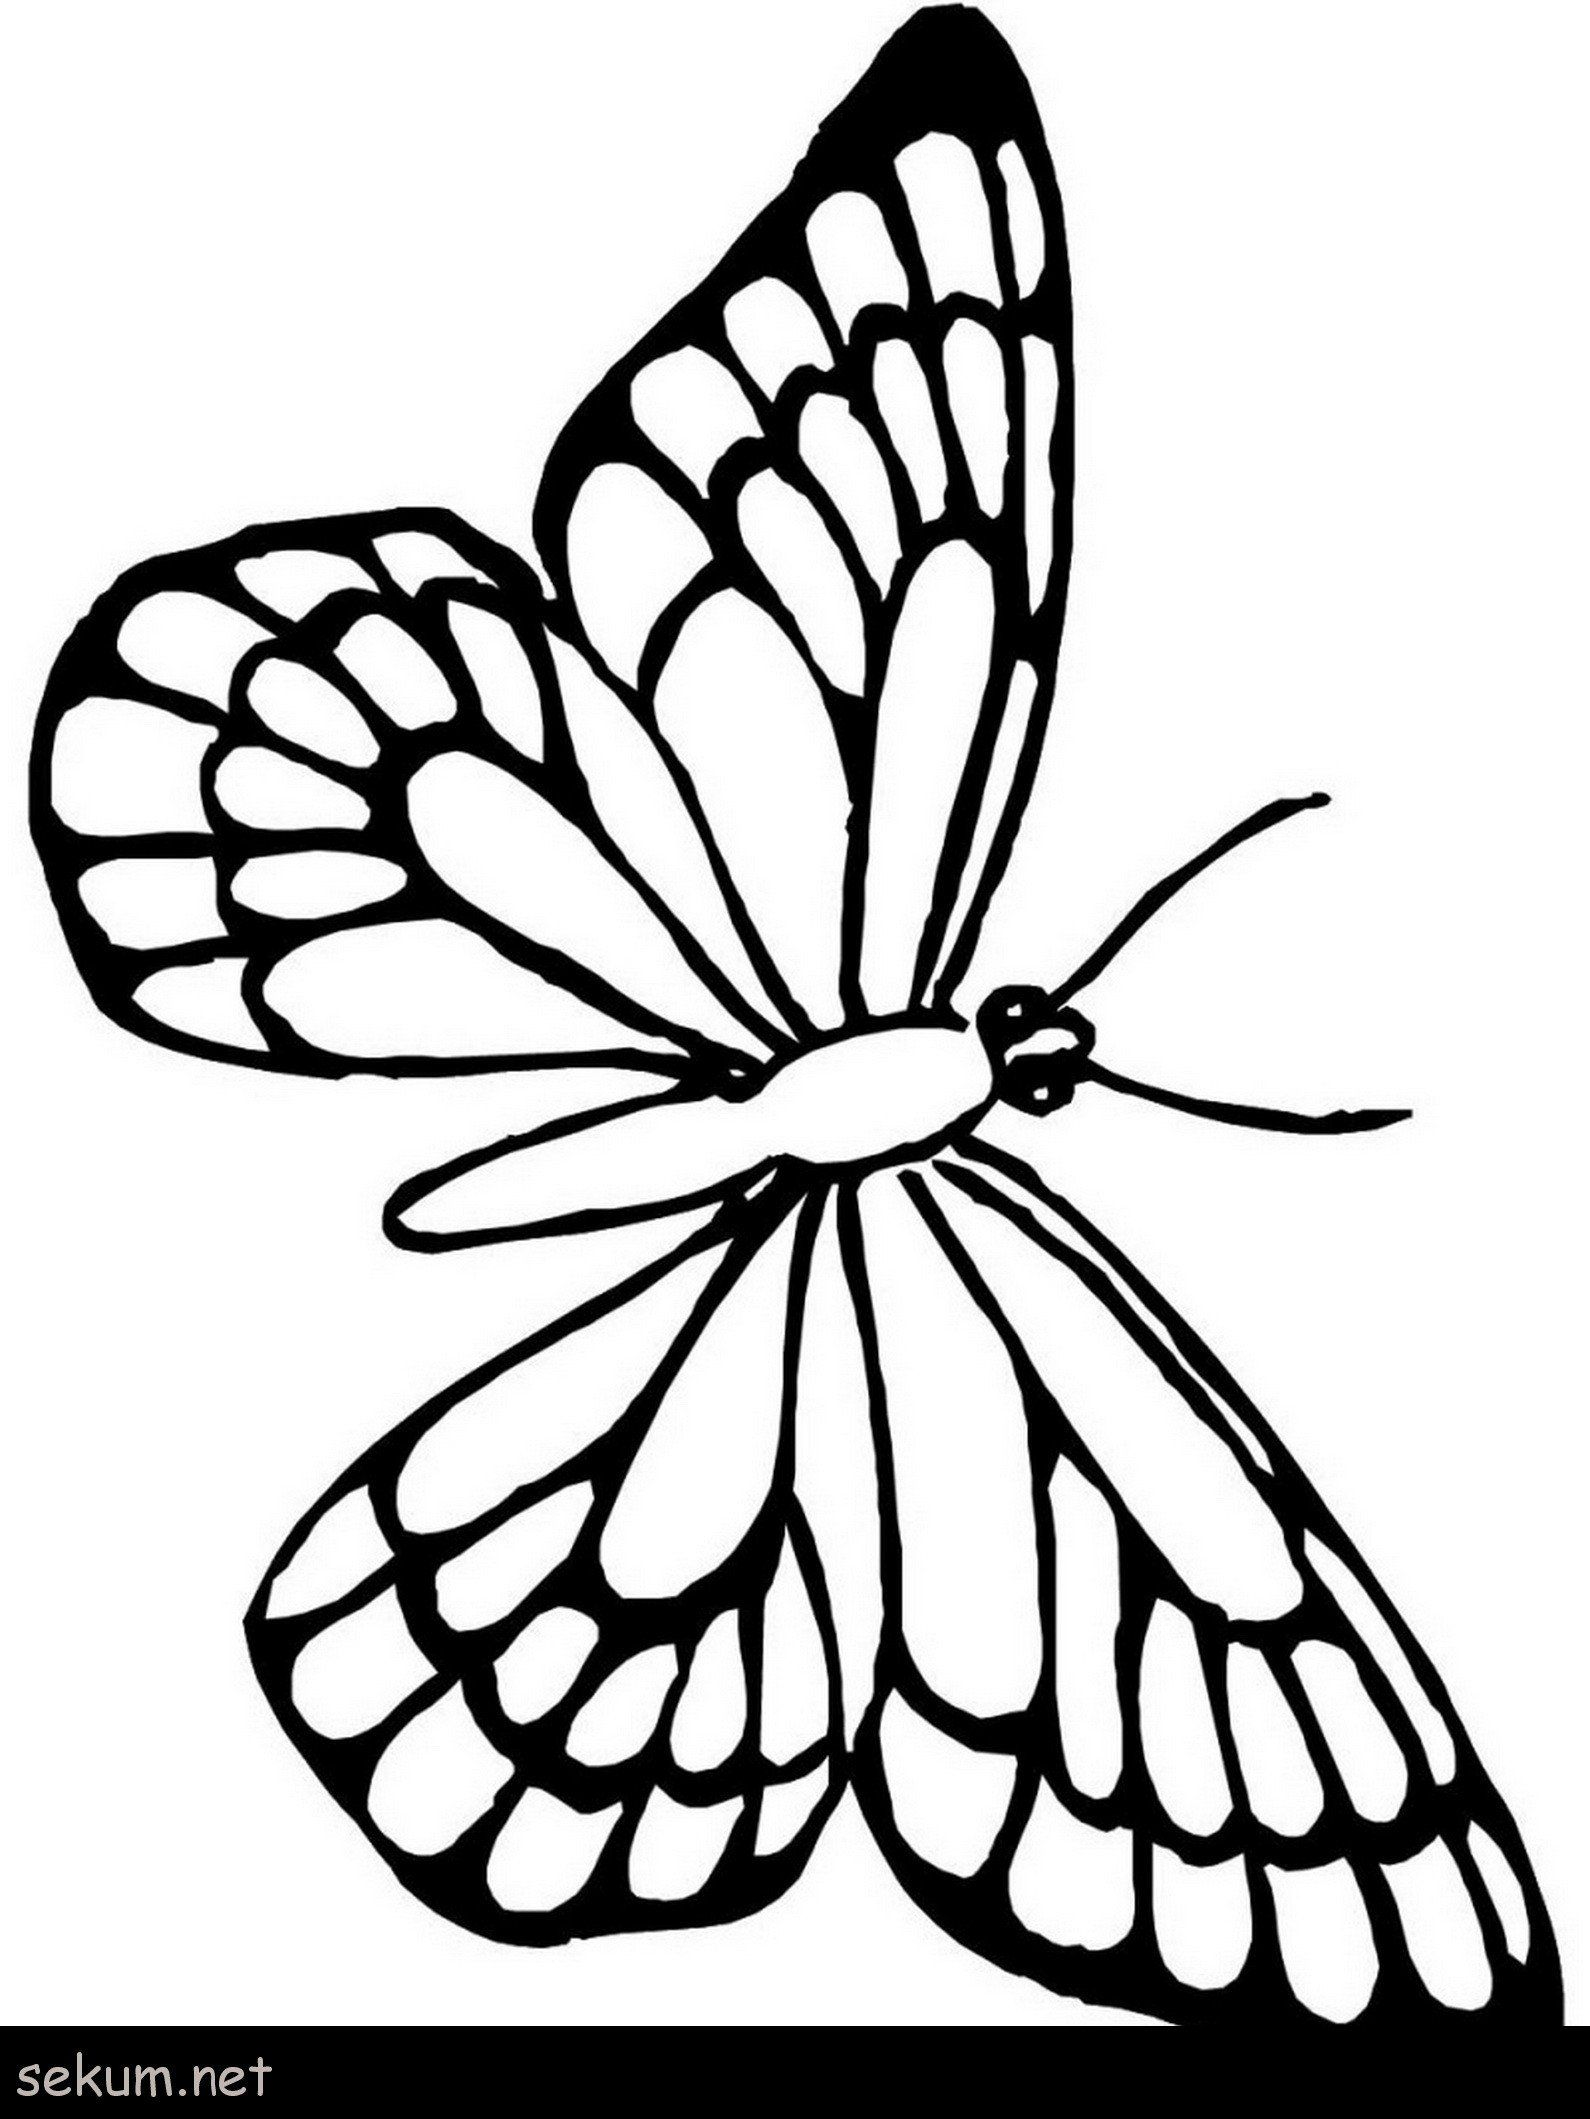 Coloring Pages For Kids Butterflies Coloring Pages Coloring Book Butterfly For Kids Adults Butterfly Coloring Page Love Coloring Pages Butterfly Outline